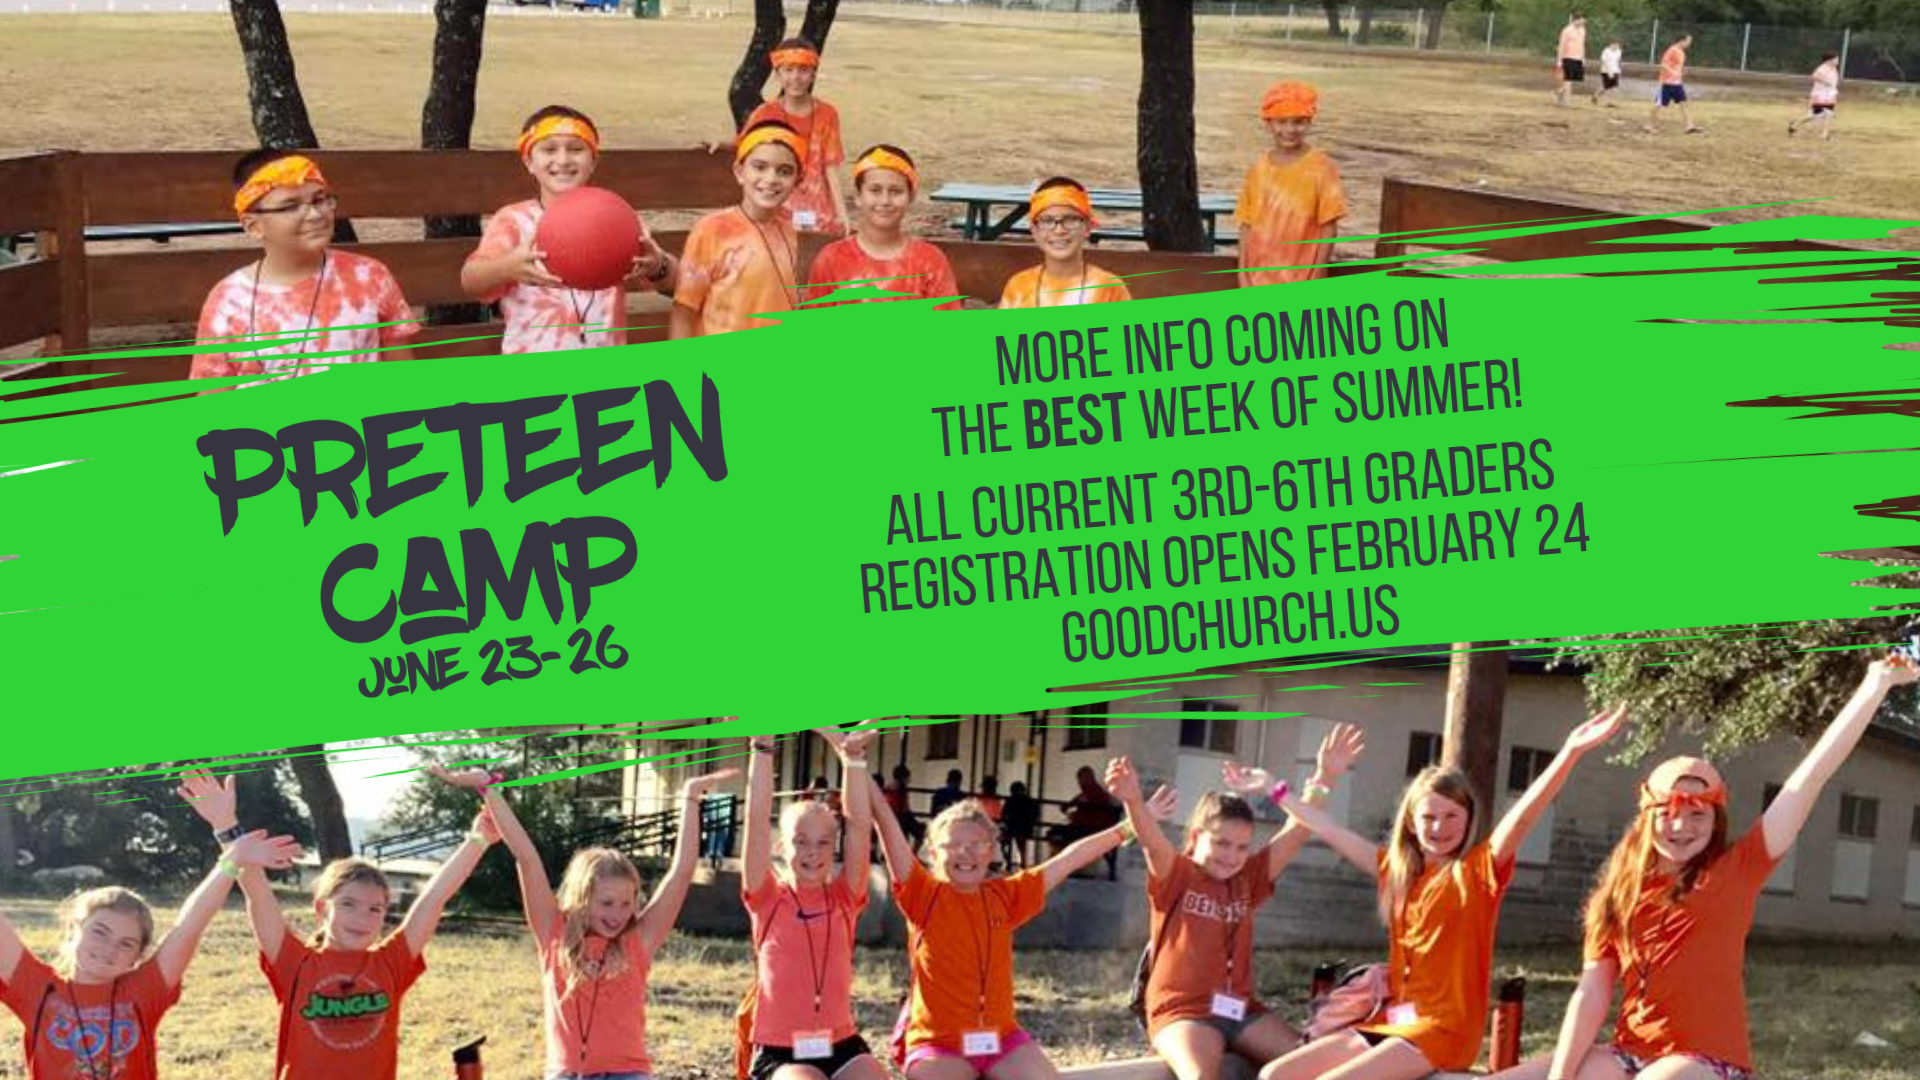 preteen camp 2019 web size.png